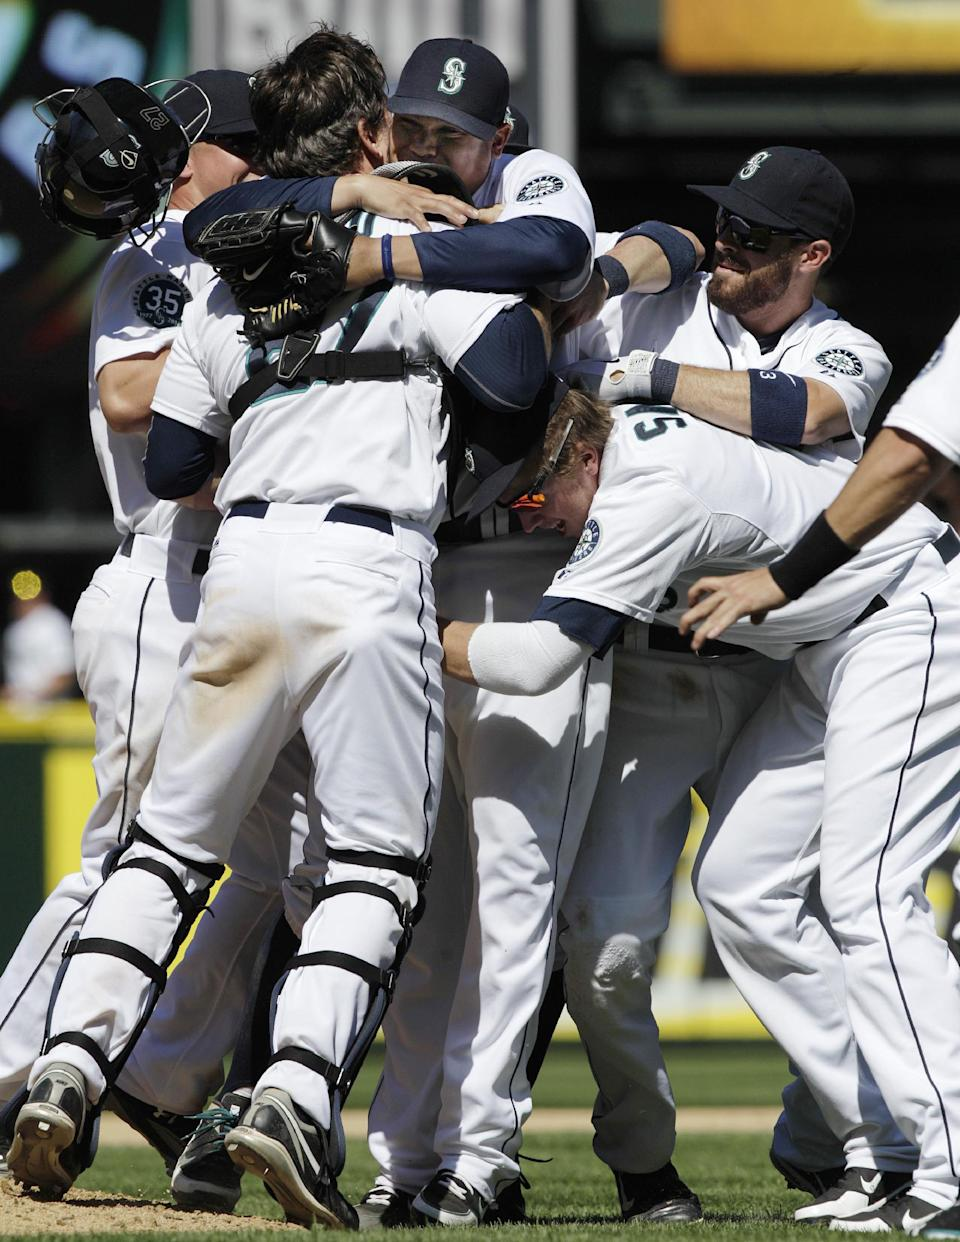 Seattle Mariners pitcher Felix Hernandez is mobbed by teammates, including catcher John Jaso, after he threw a perfect game against the Tampa Bay Rays, in a baseball game Wednesday, Aug. 15, 2012, in Seattle. The Mariners won 1-0. (AP Photo/Ted S. Warren)